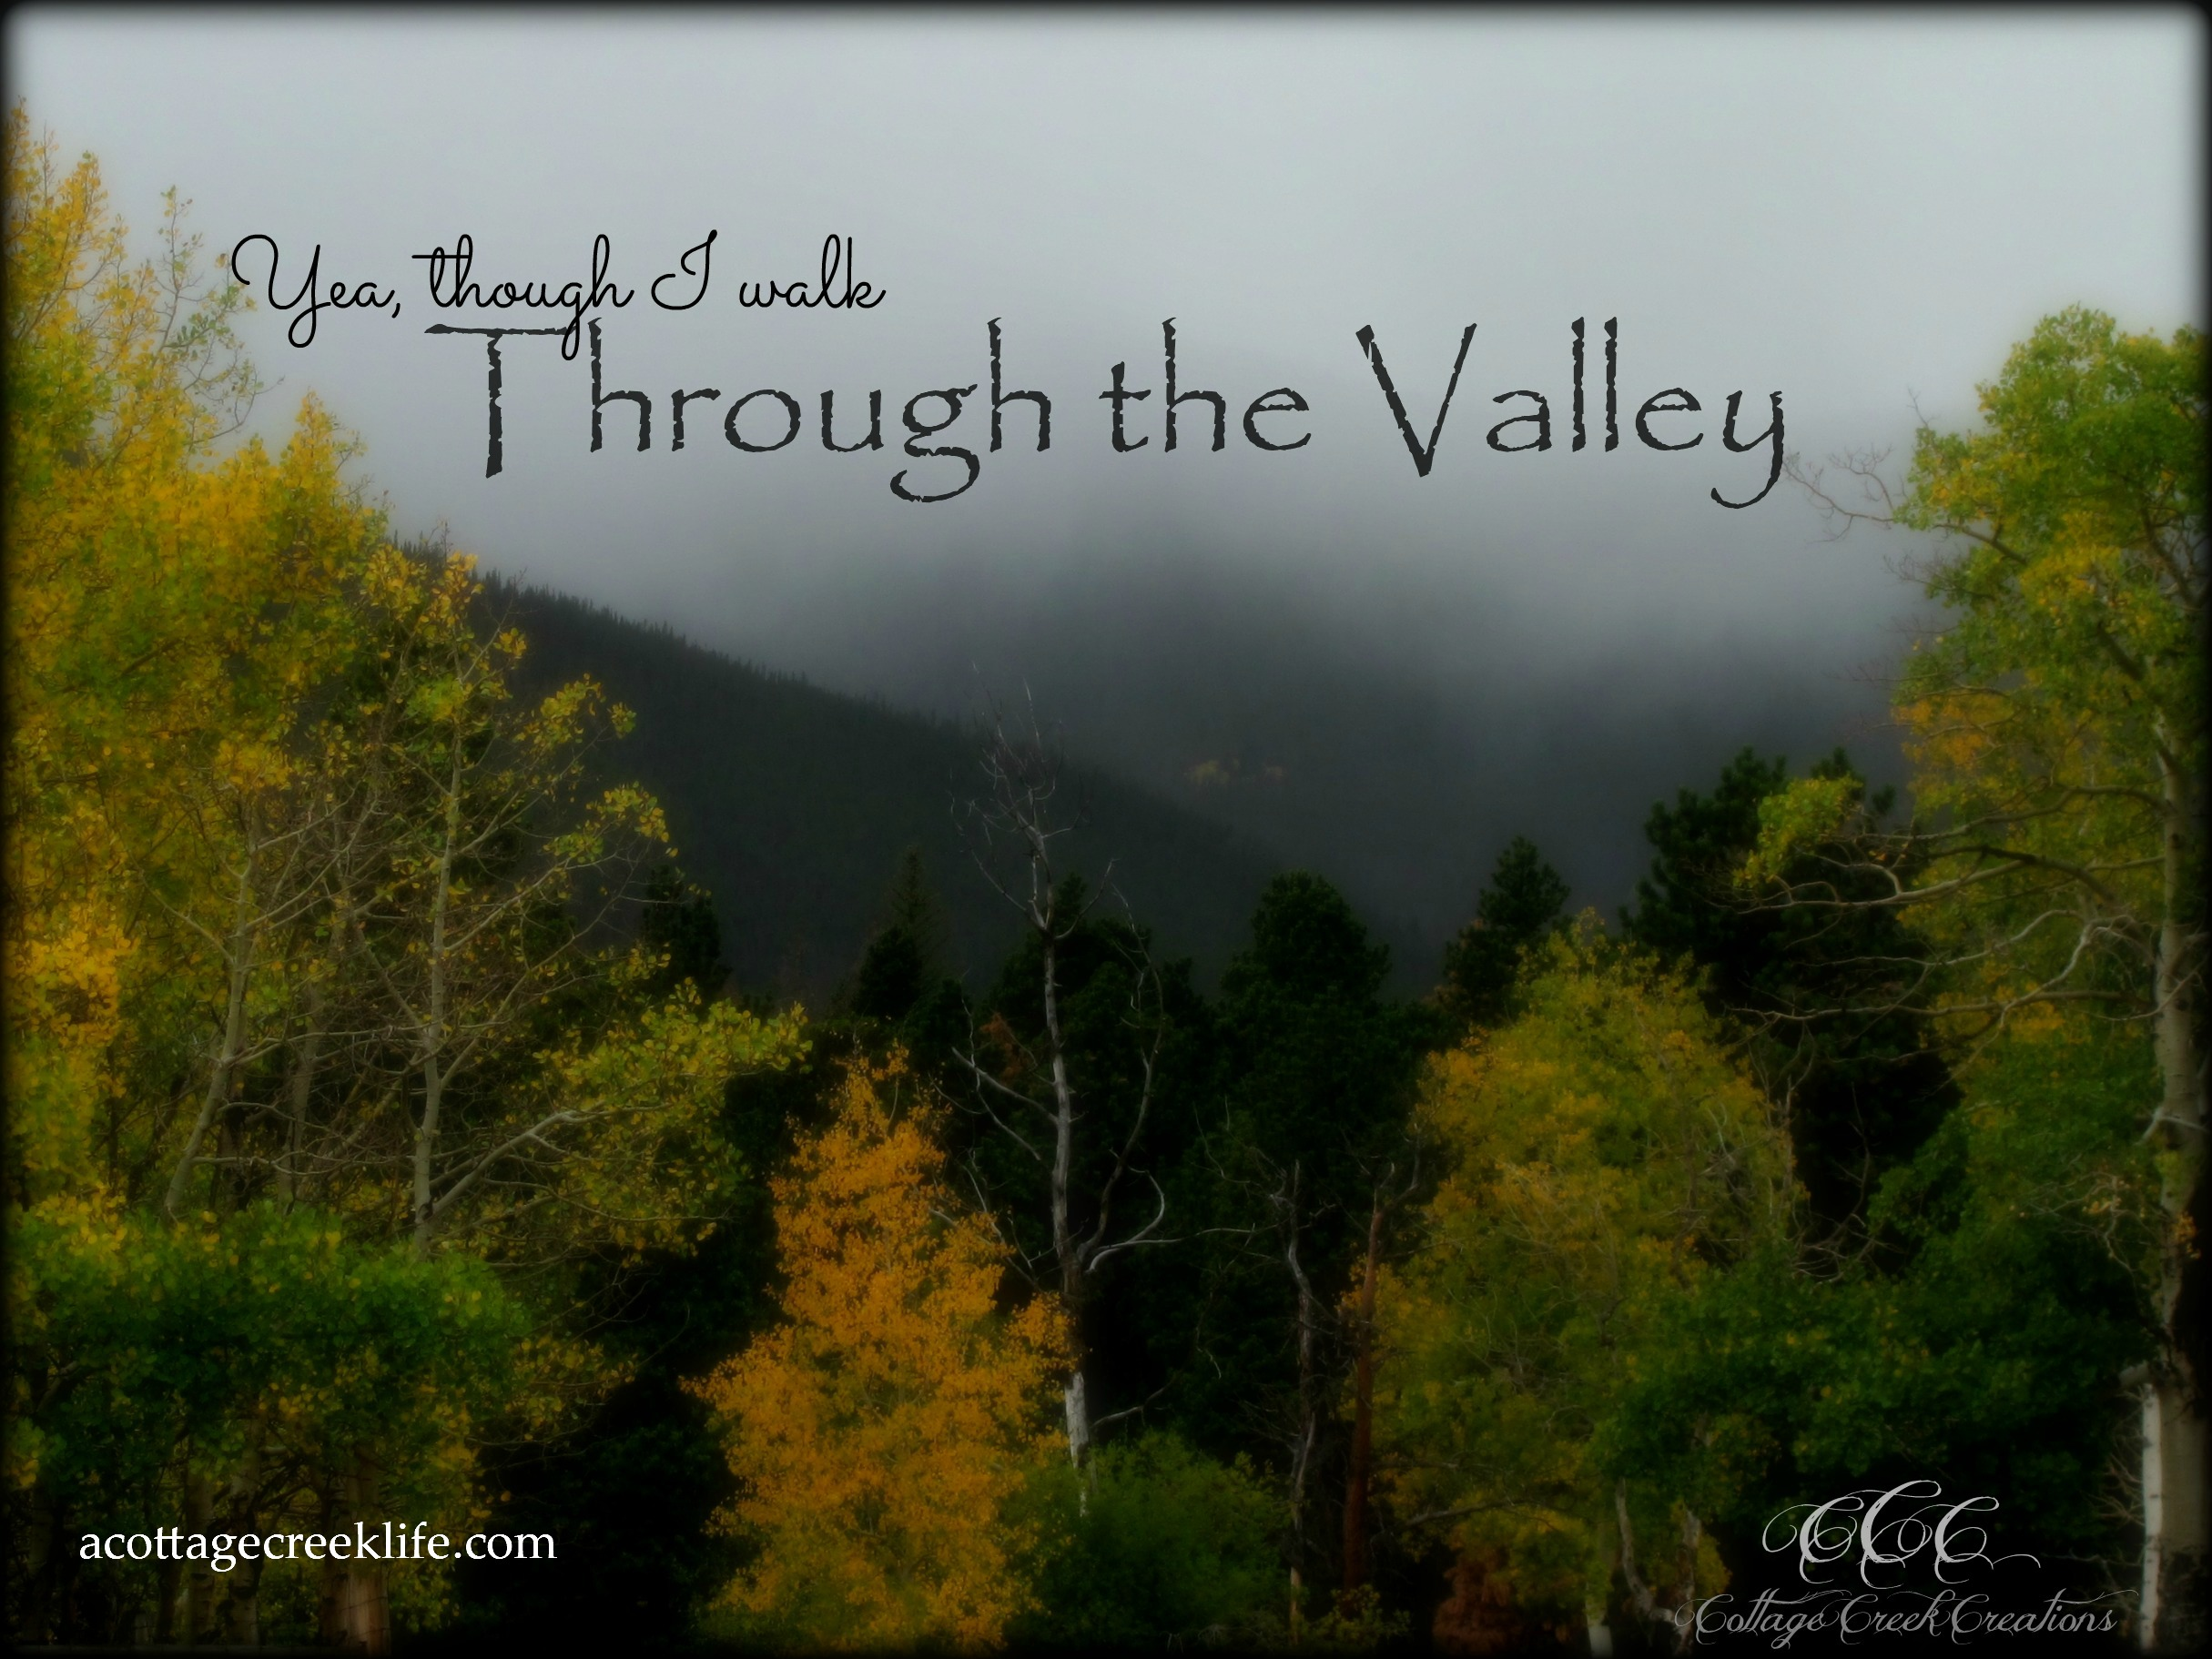 Through the Valley